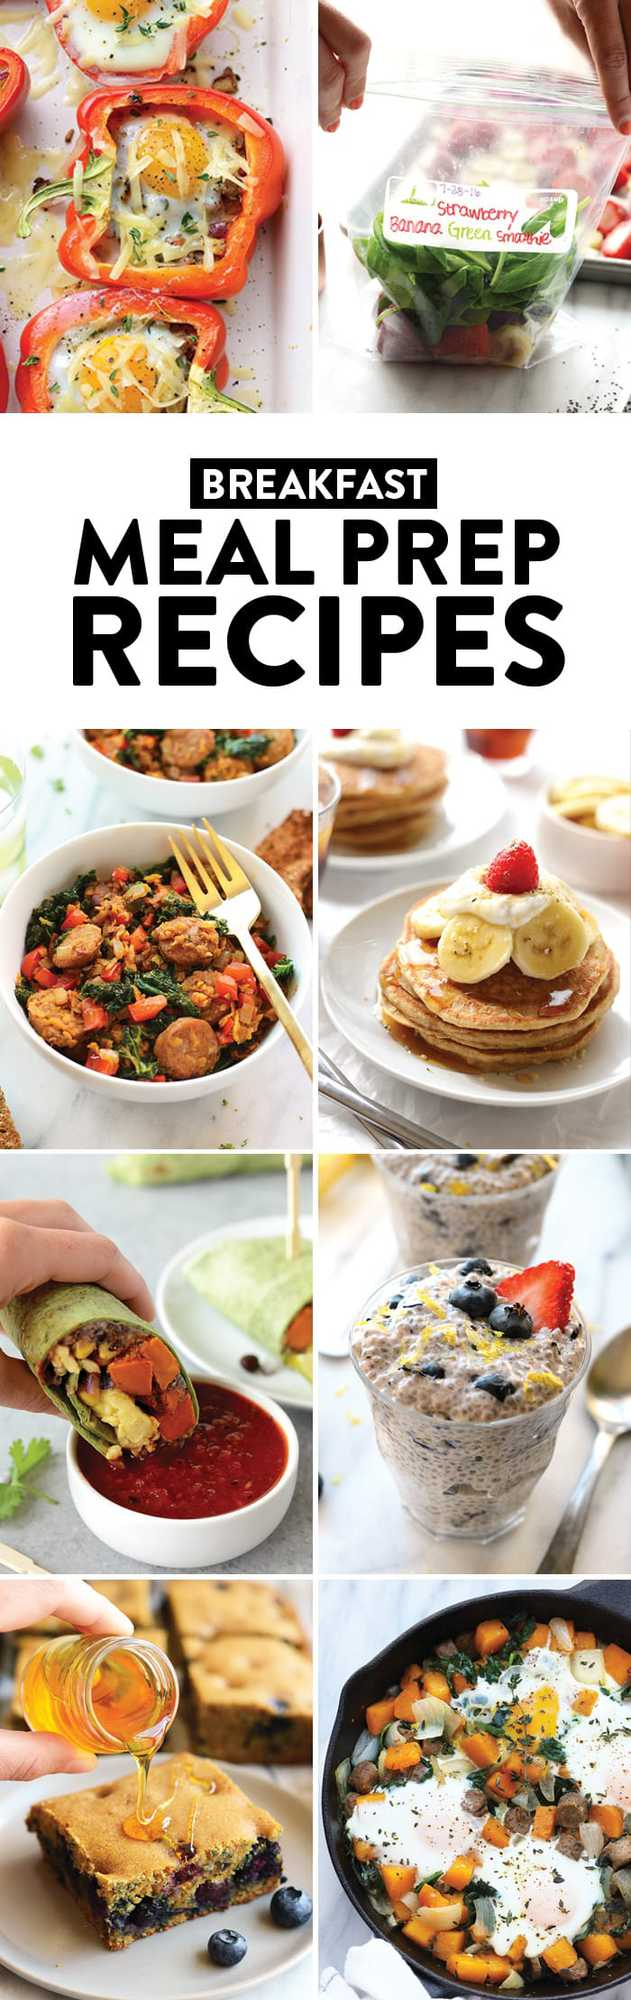 Meal prepped breakfasts are the perfect way to start your morning with ease. Try one of these healthy and nutrient-packed recipes to fuel up and start the day off right!